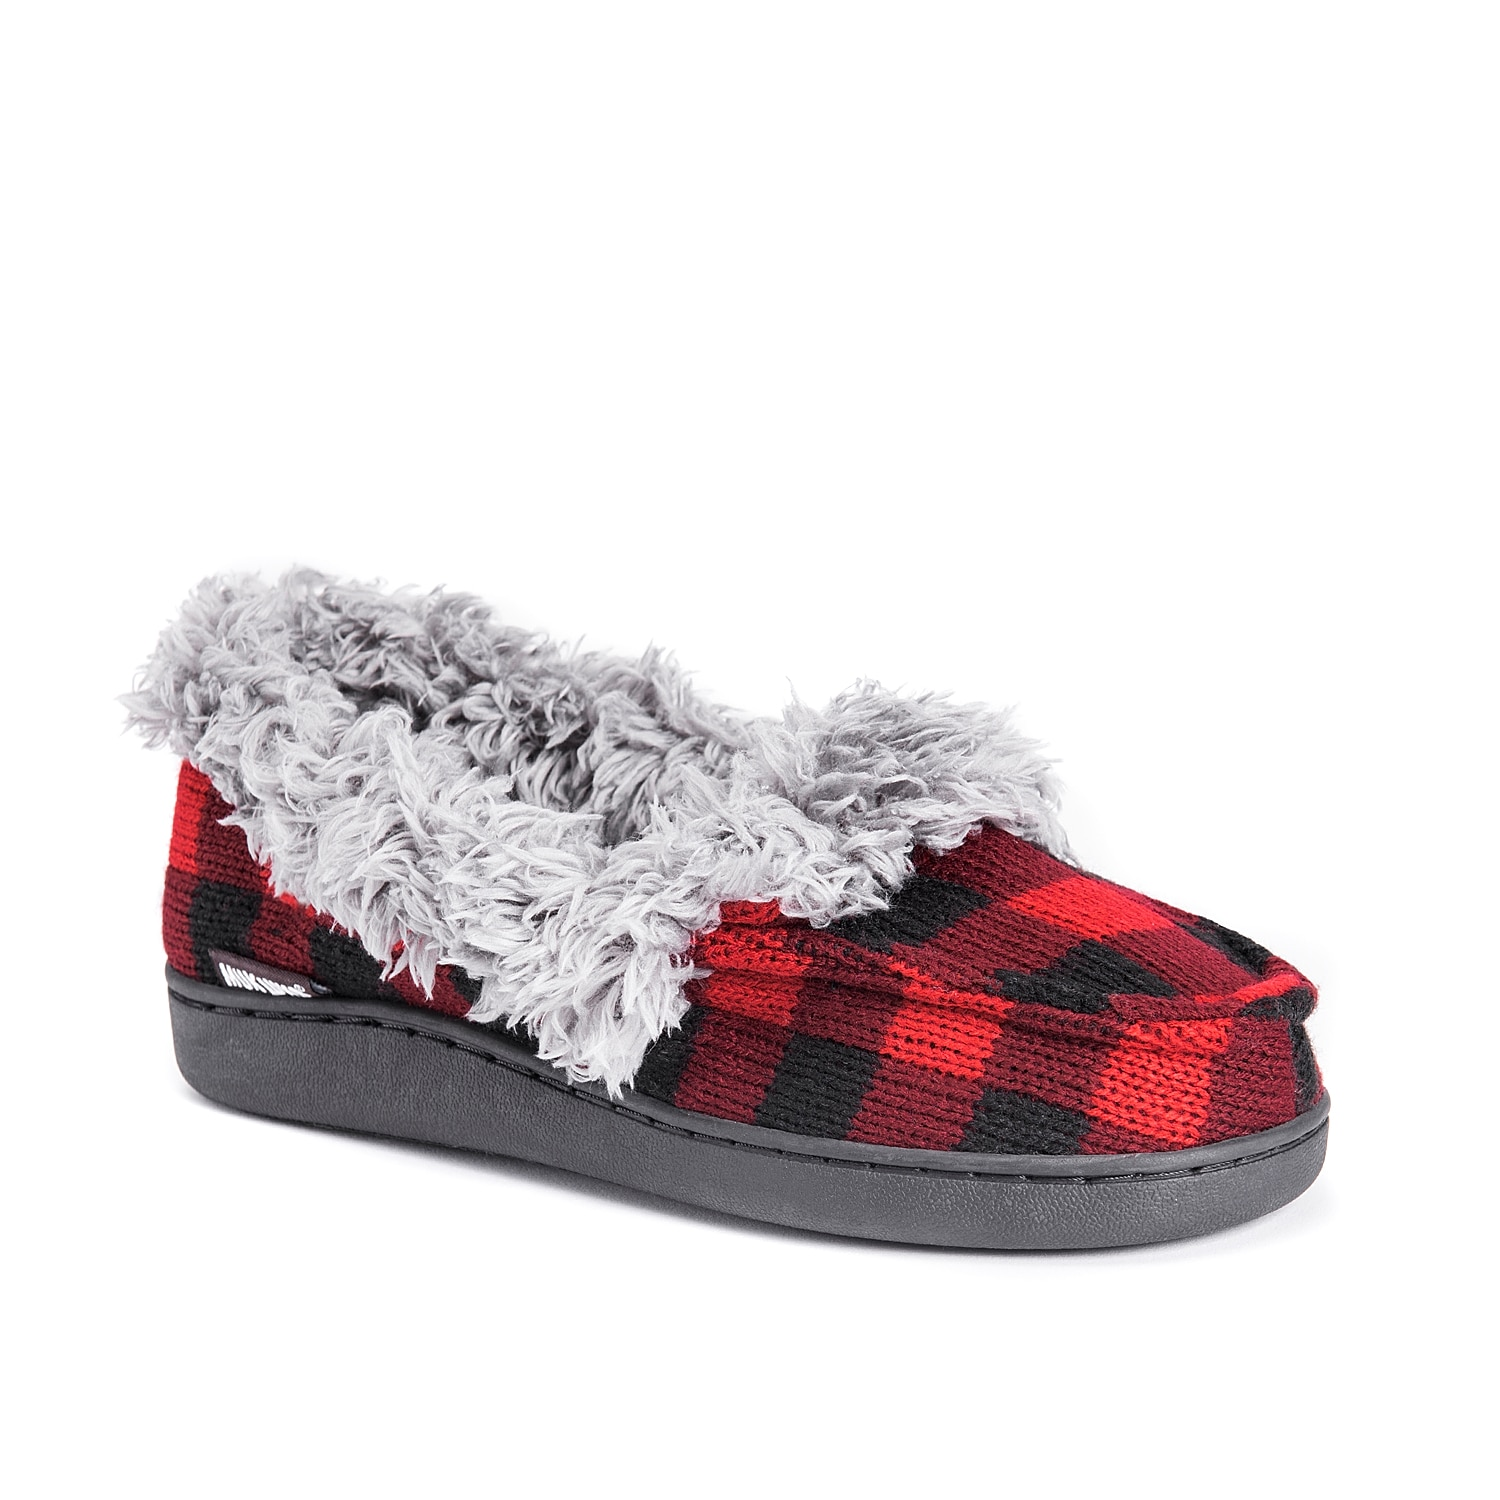 Feel cozy even in cold weather with the Muk Luks Anais slipper. Lined with a plush collar, this bootie features a faux fur insole to provide the ultimate warm hug!